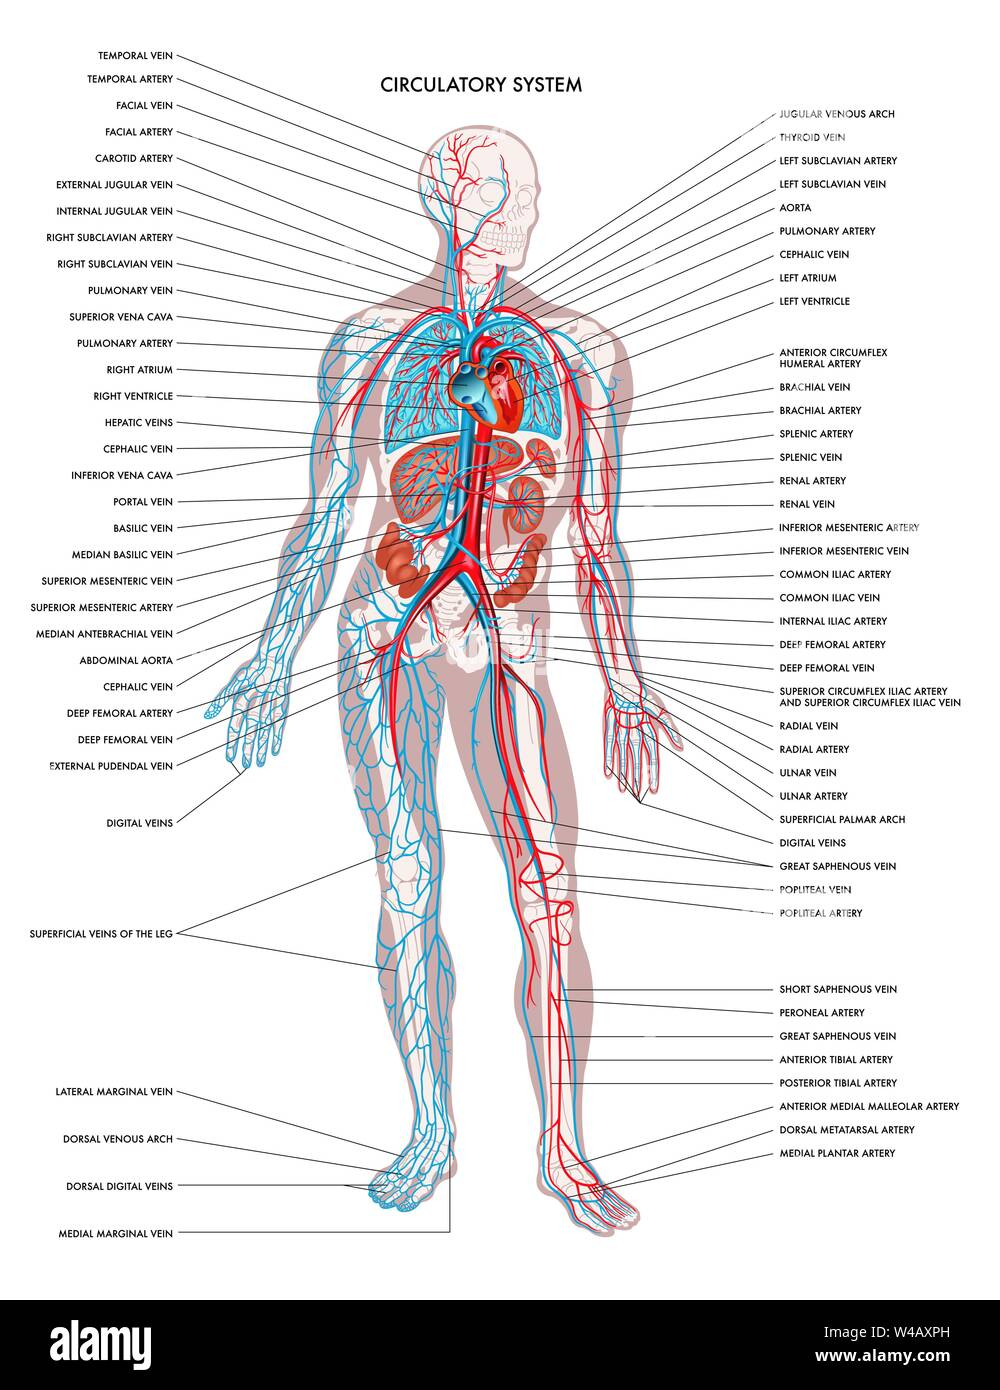 human circulatory system diagram circulatory system stock photos   circulatory system stock images  circulatory system stock photos